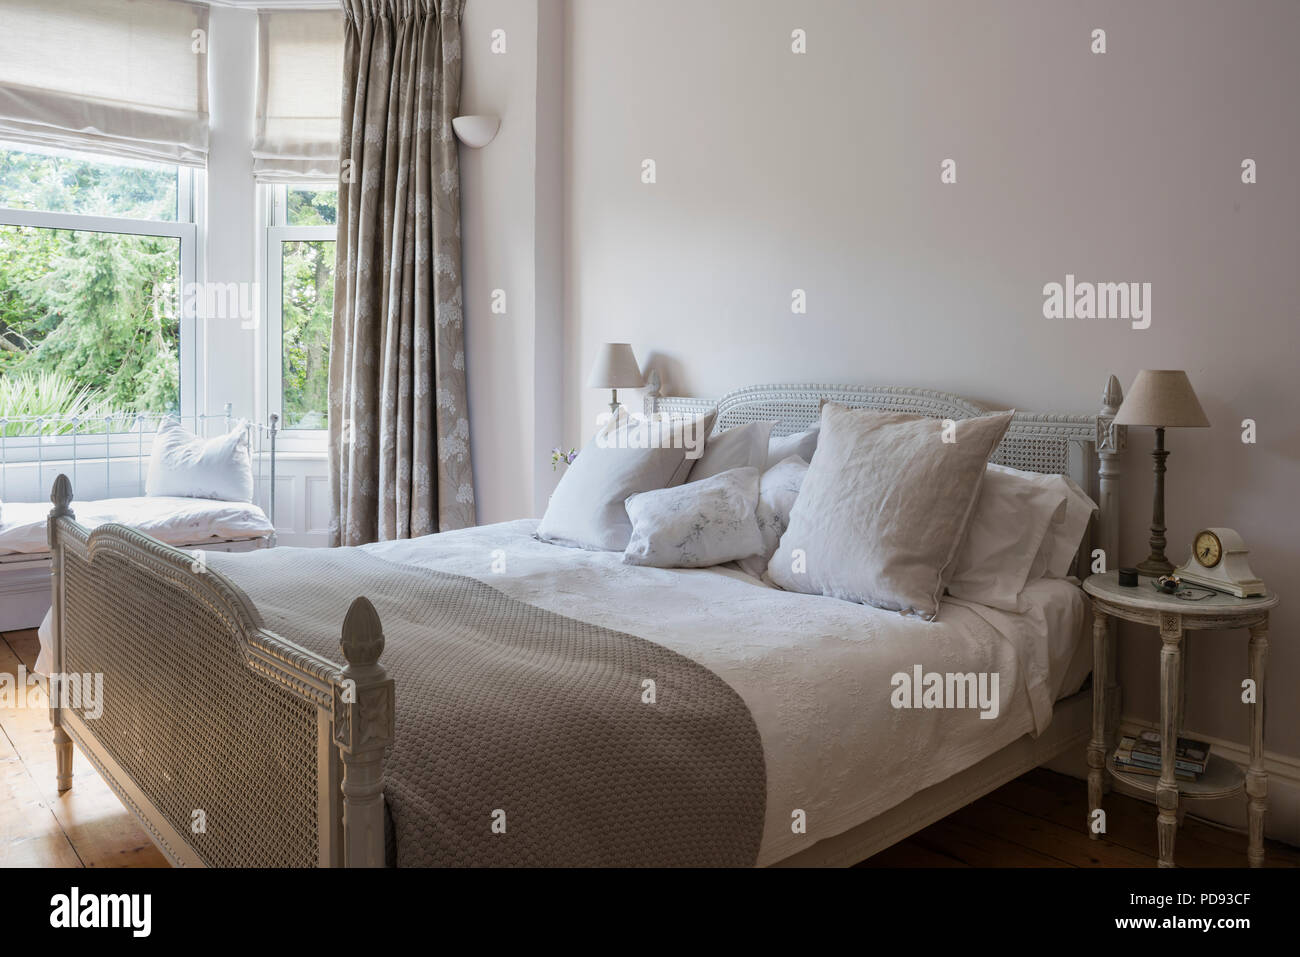 The French Bedroom Company Stock Photos & The French Bedroom Company ...